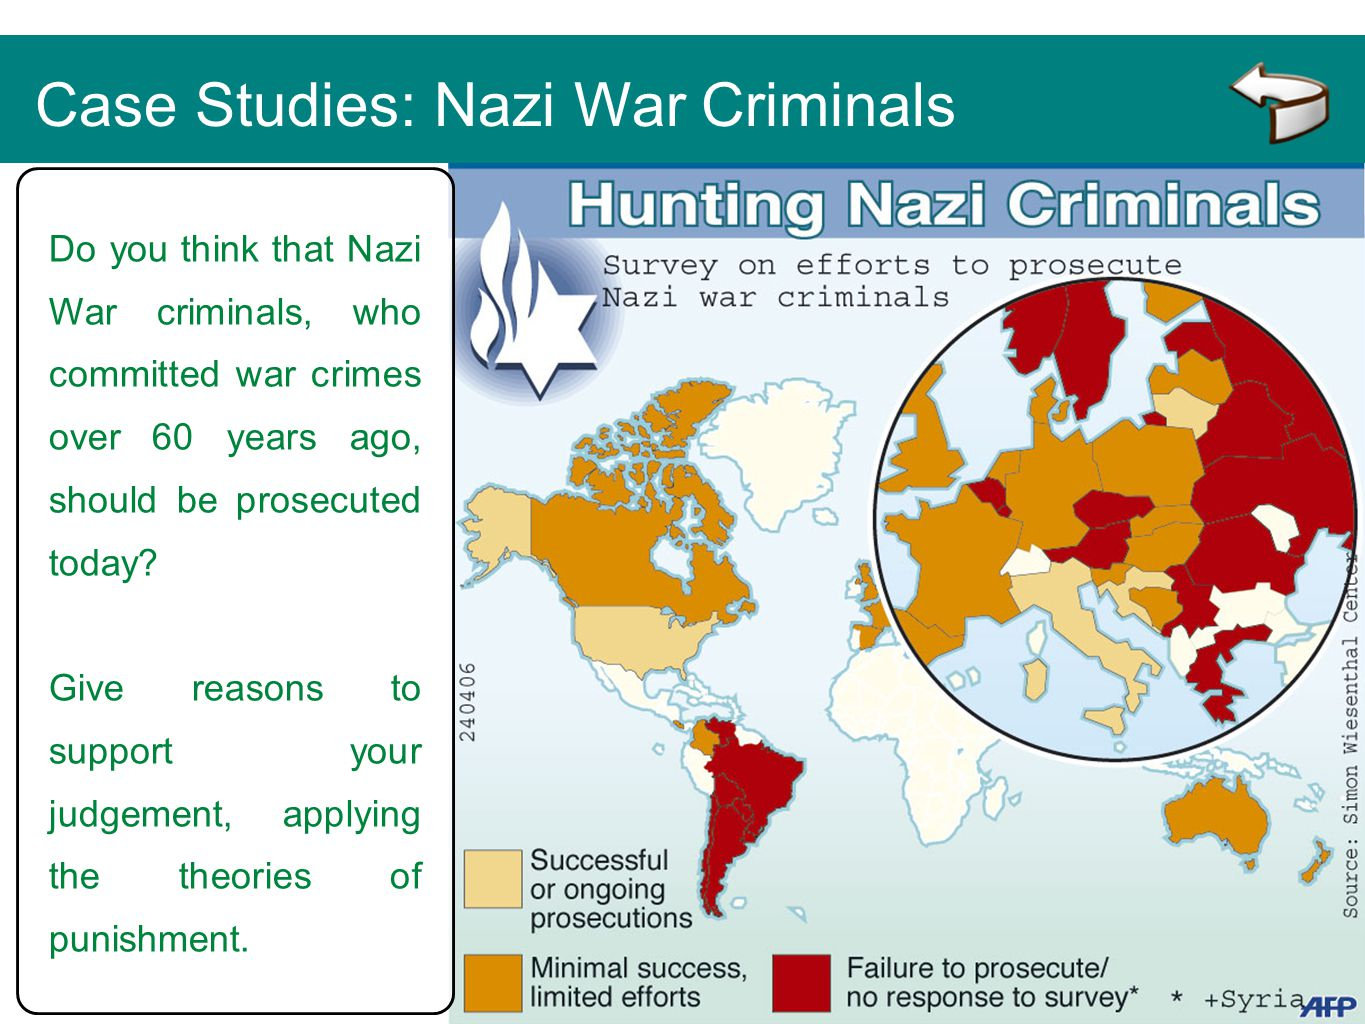 Case Studies: Nazi War Criminals